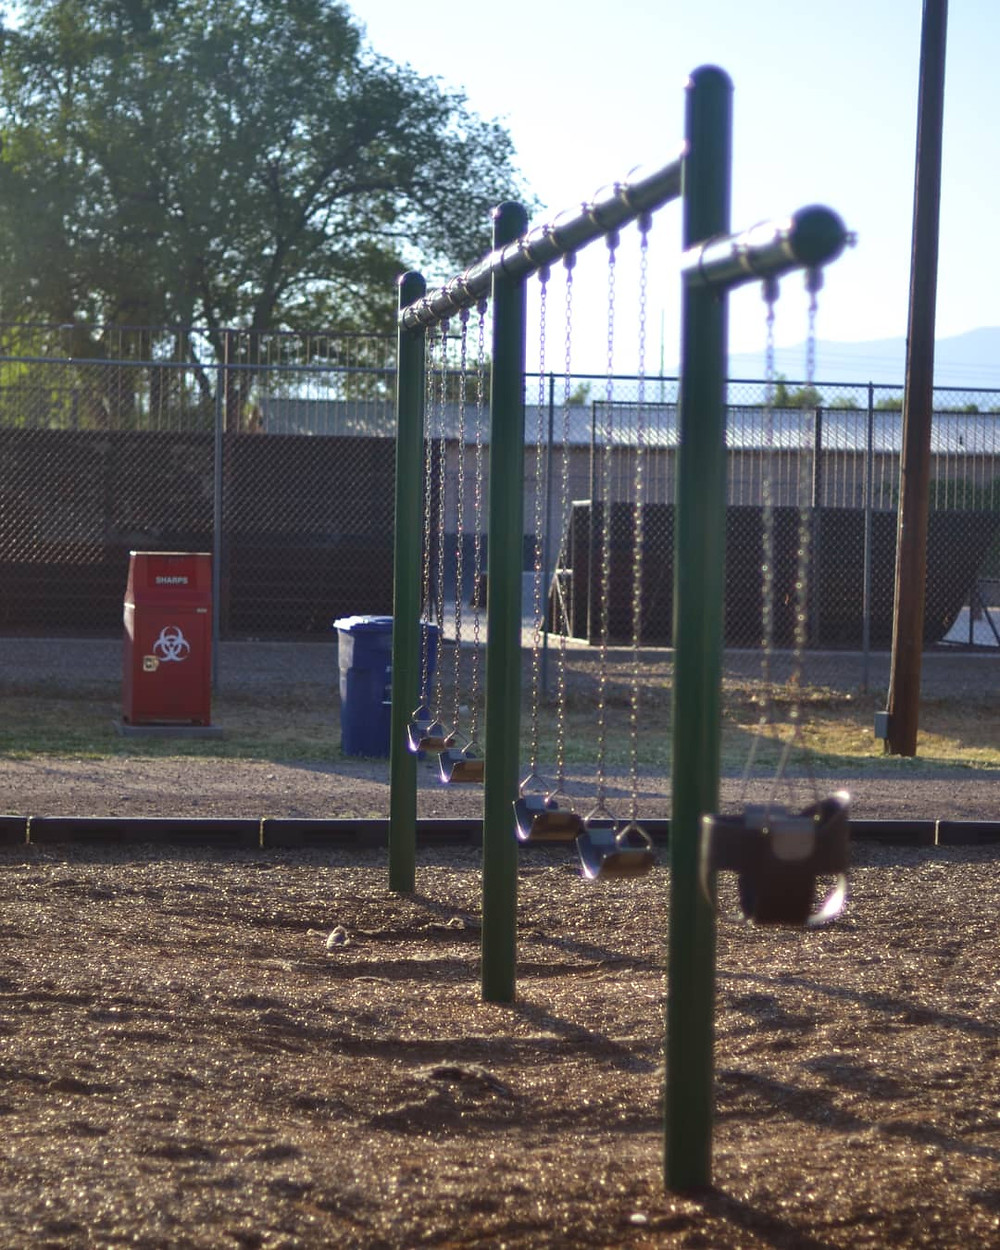 Where Worlds Collide - Sharps container on a playground in Espanola